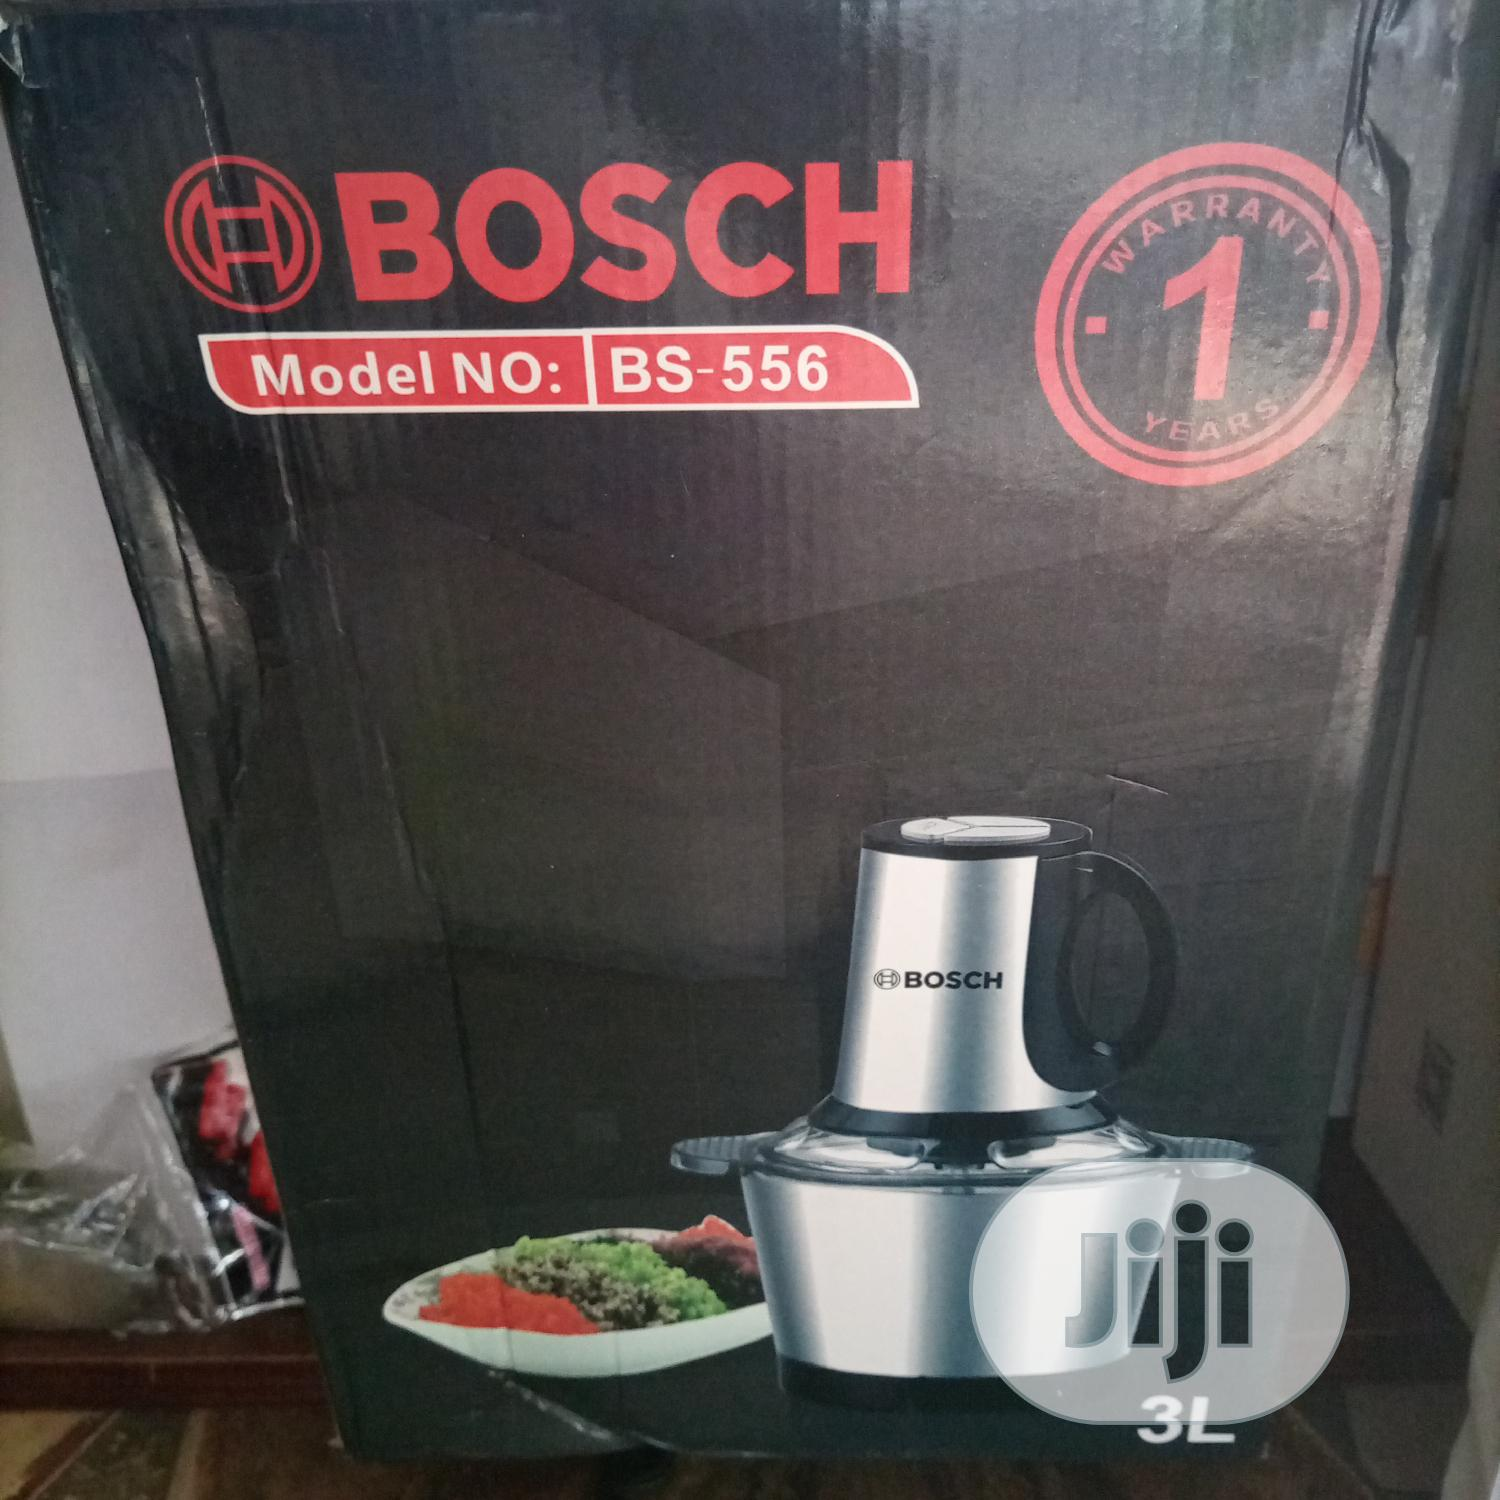 Bosch 3 Litres Electric Stainless Steel Bowl Food Processor